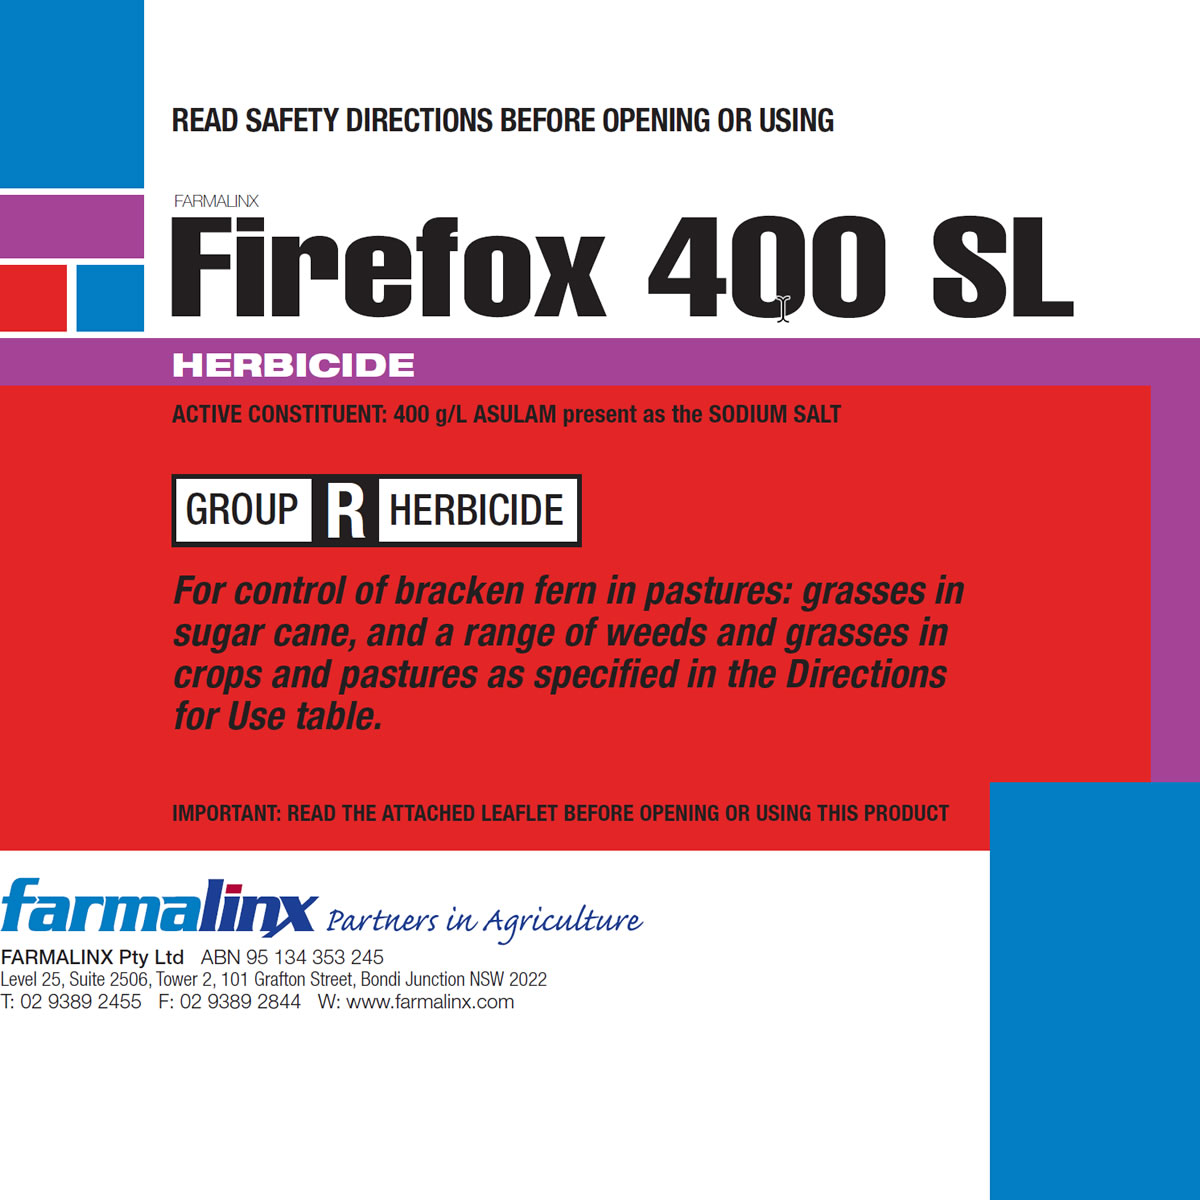 Farmalinx: Crop Protection Chemicals | Agricultural Chemicals